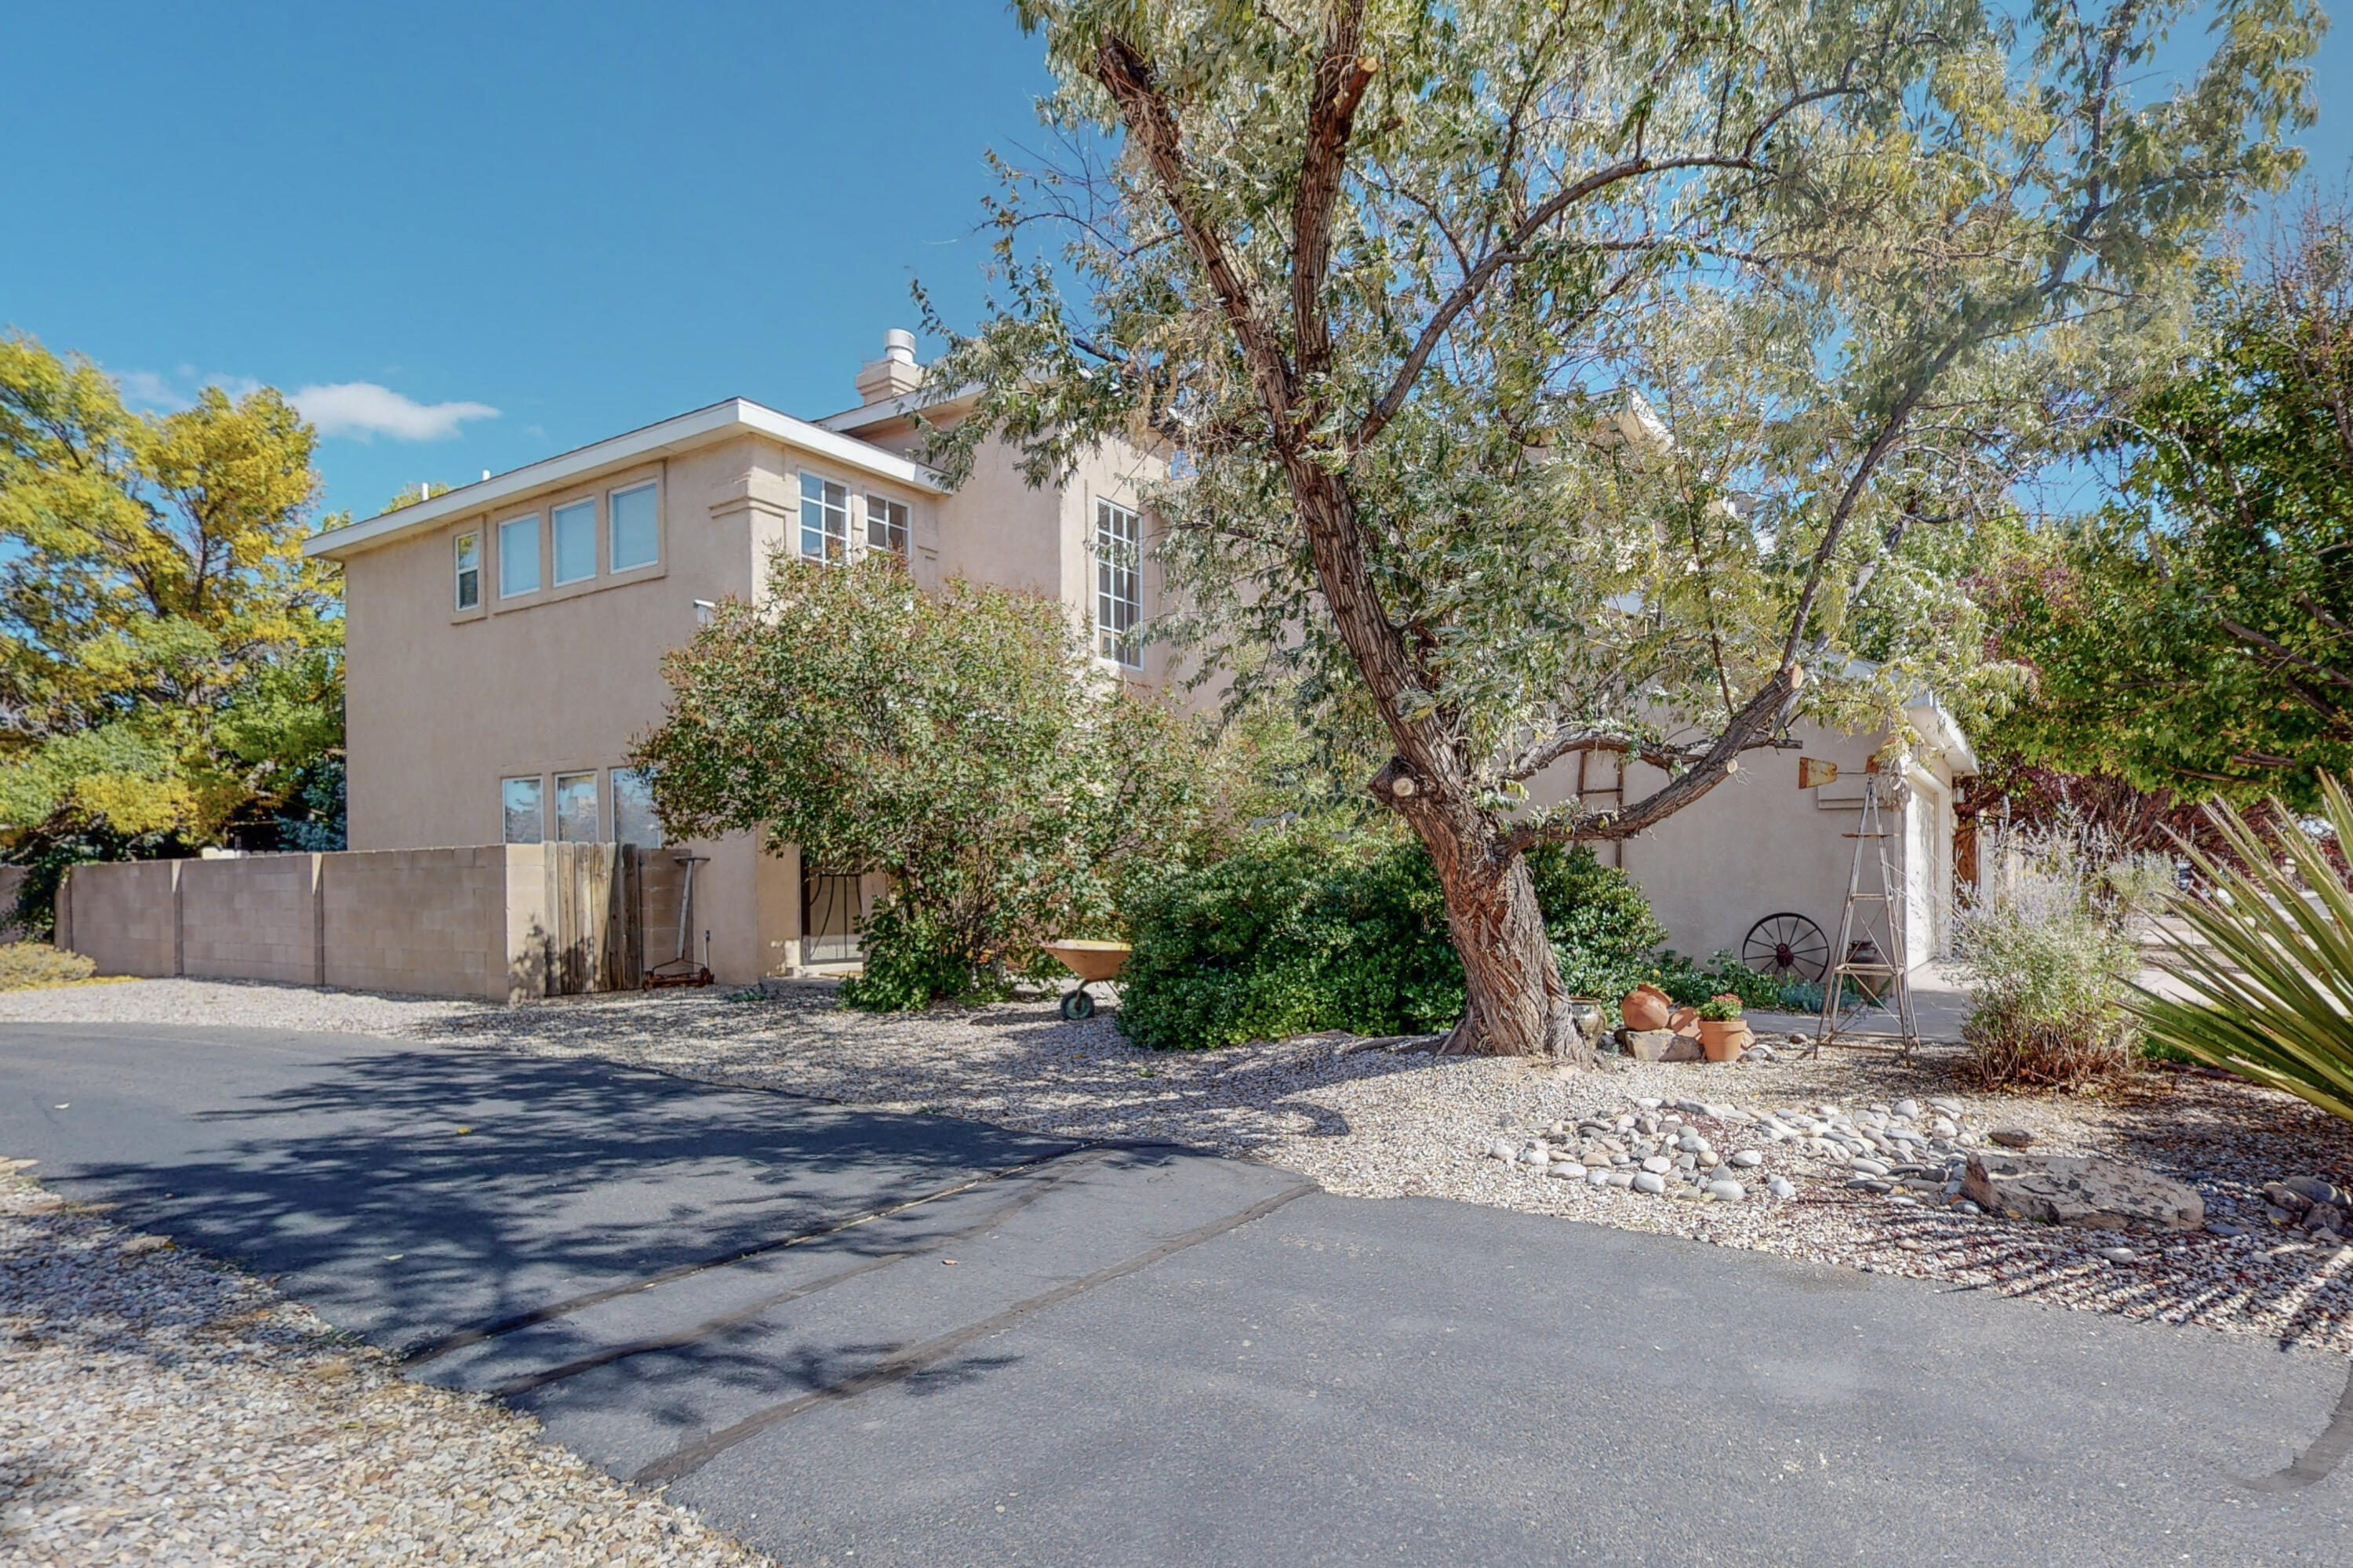 Rare opportunity in much desired Ventana Ranch!  This bright and beautiful gem has been meticulously cared for.  Featuring multiple living/entertaining areas and four beds three bathrooms there is plenty of room for all of life's events.  Also, with bedrooms on both levels, the home can accommodate family of different needs. As an added bonus, this home was recently upgraded with new flooring on the lower level, kitchen cabinets, subway tile and granite countertops ready for a magazine cover.  Relax in the pristine oasis featured in the back yard that is super private and filled with life.  Some Amenities include access to the community center with pool, tennis /volleyball courts and super close walking trials.  Don't miss the chance to own this magnificent home!